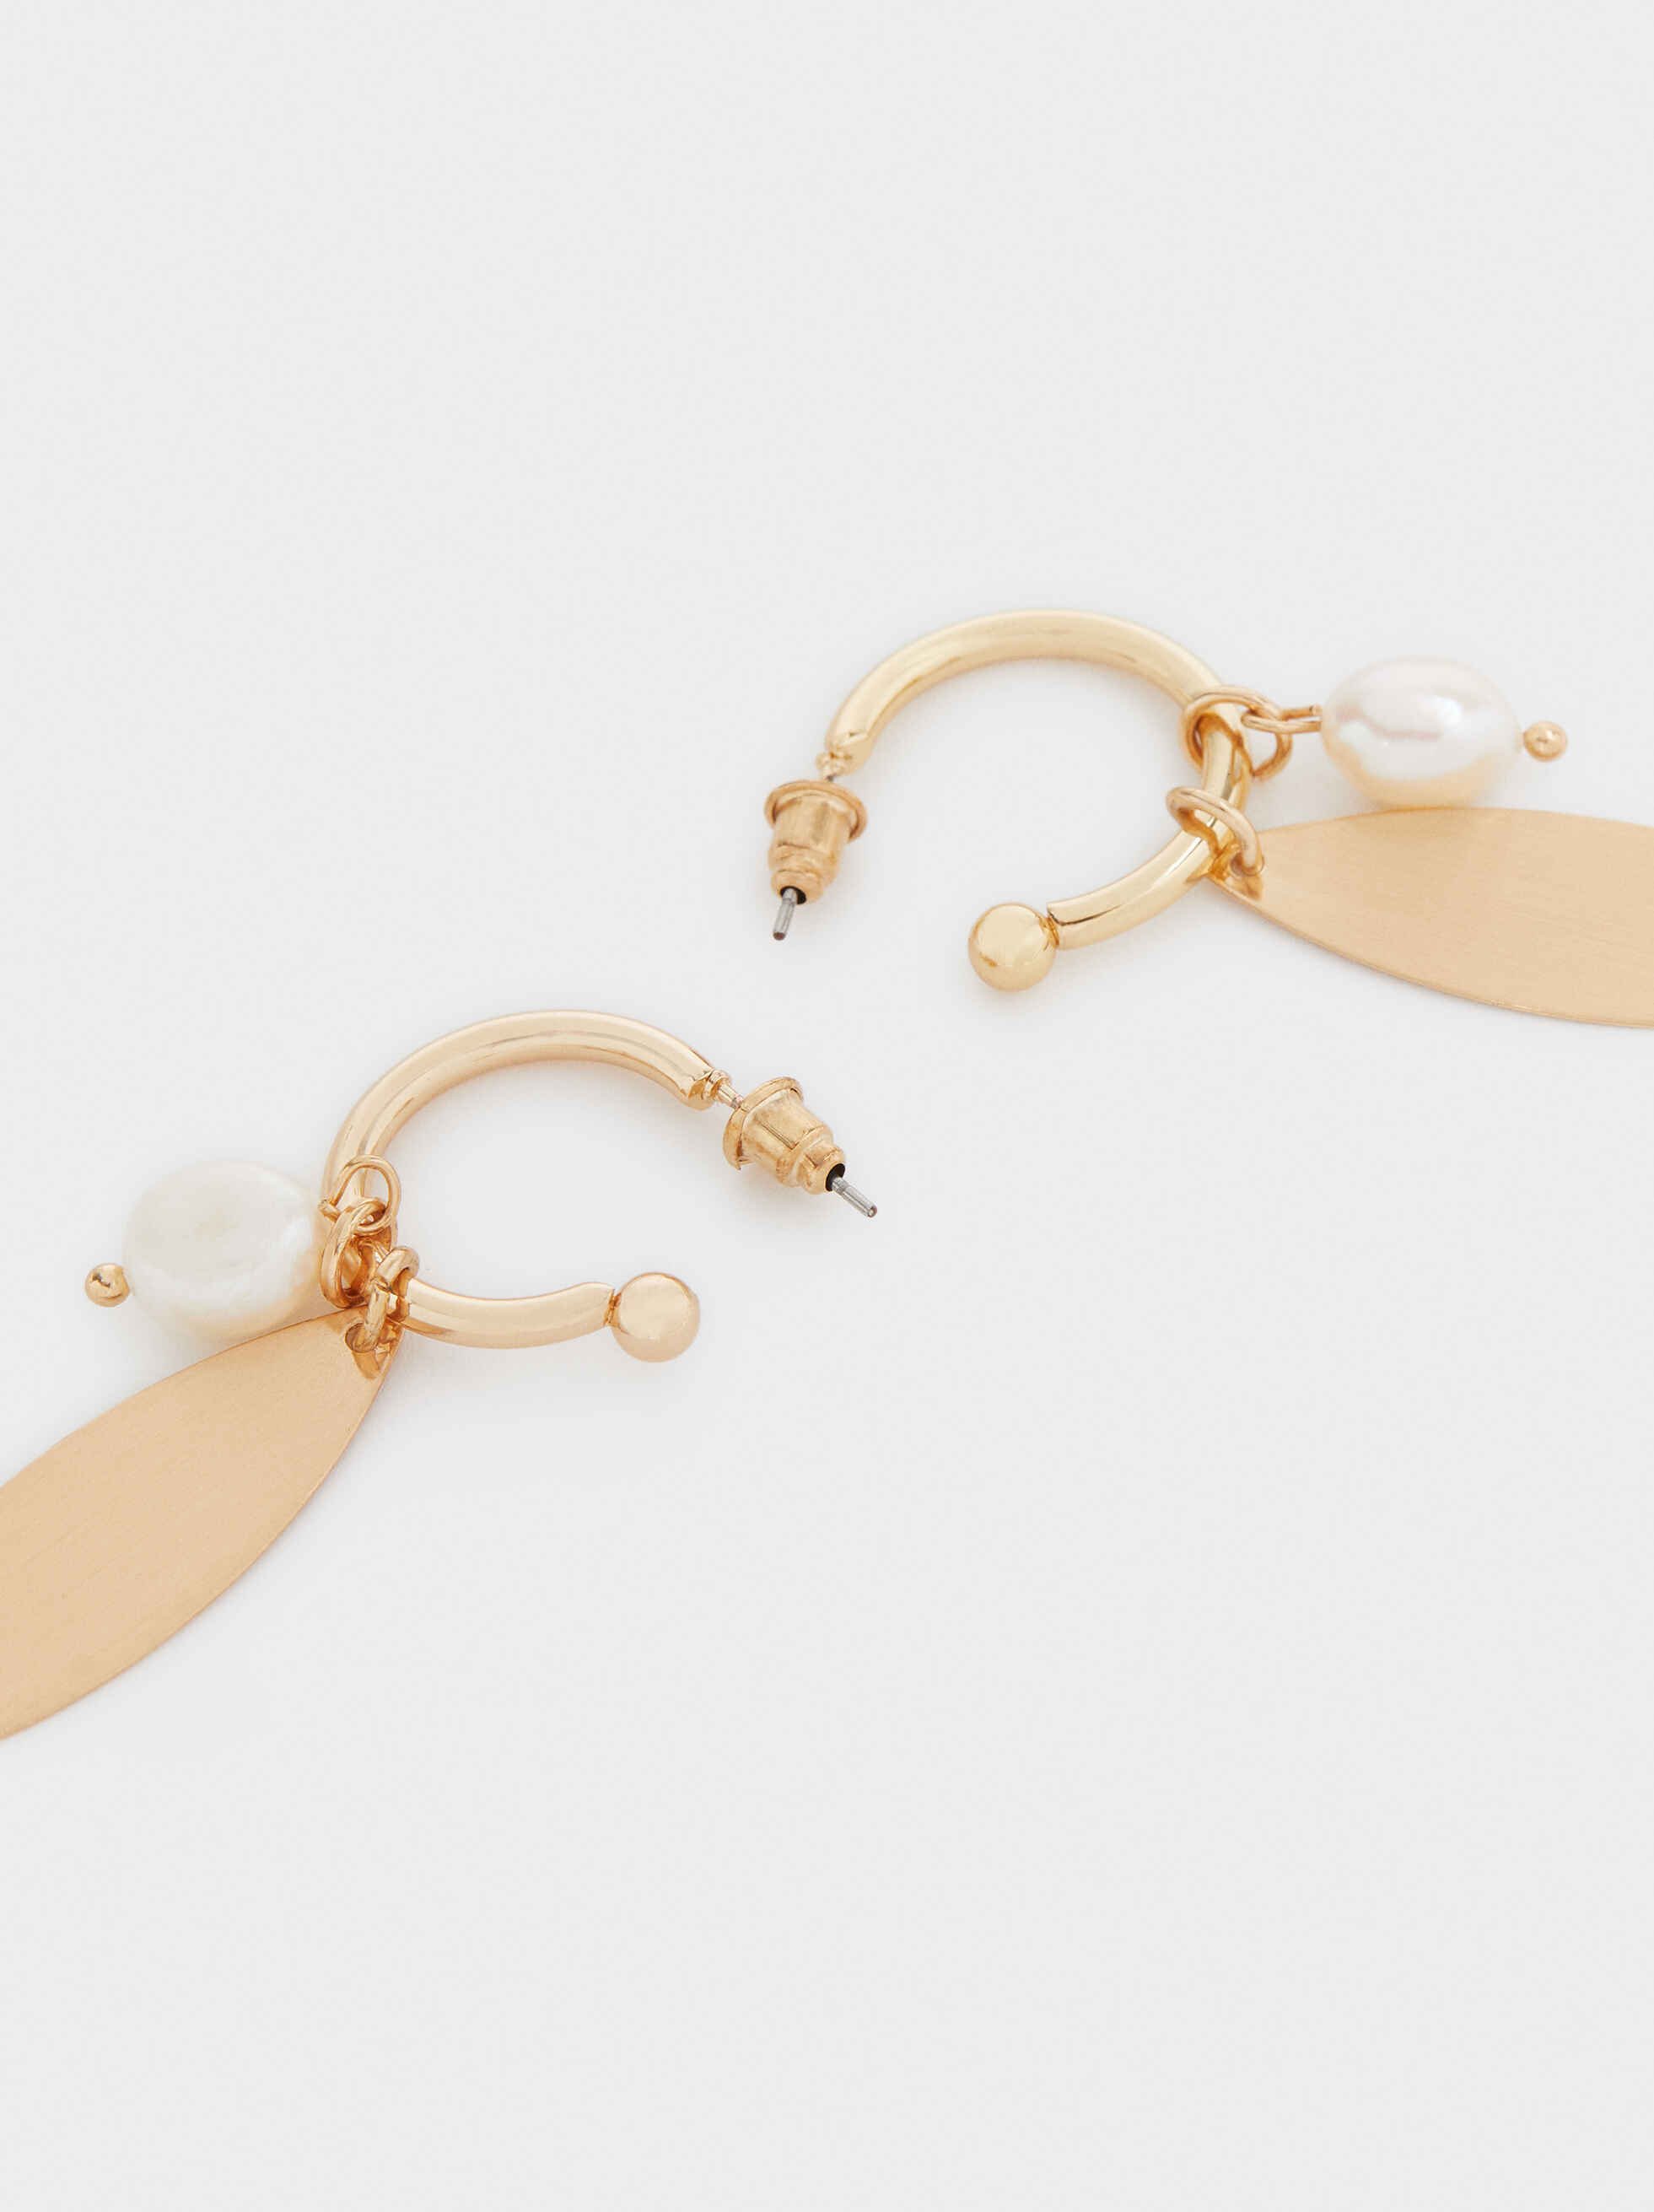 Large Gold Hoop Earrings With Faux Pearl Detail, Golden, hi-res